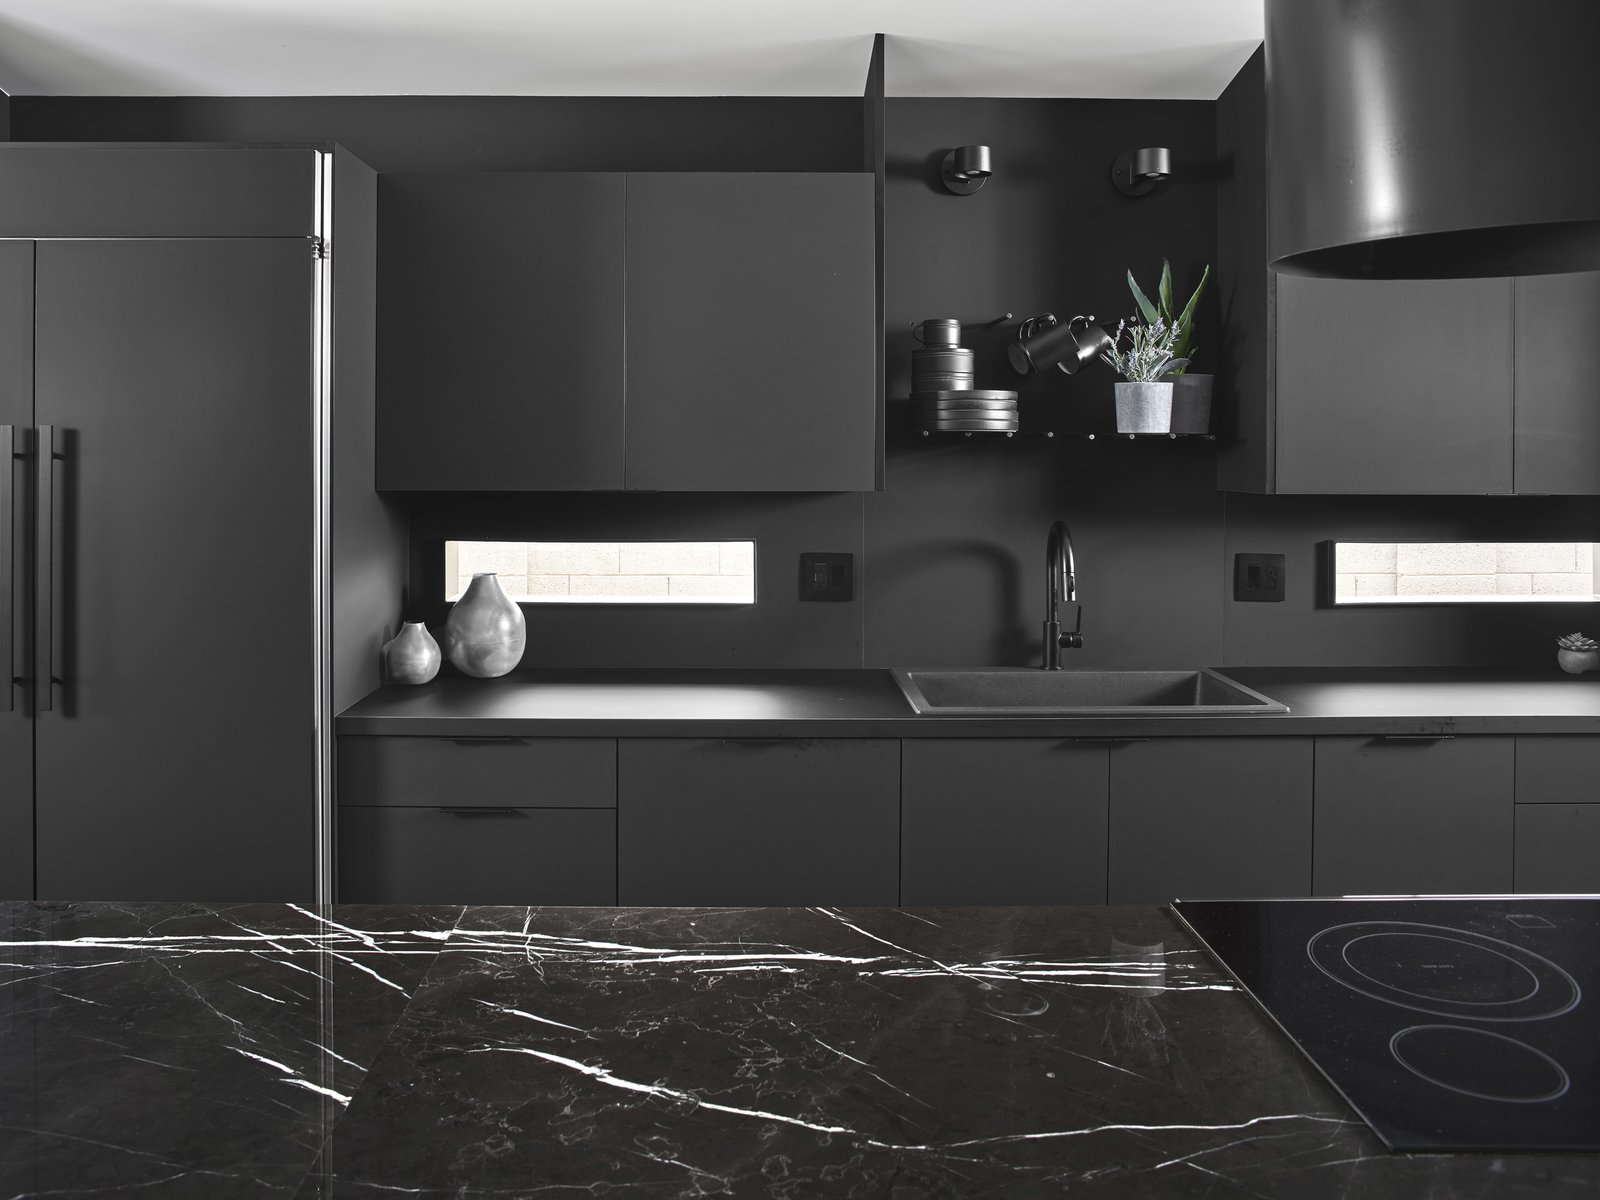 Kitchen, Laminate Counter, Drop In Sink, Laminate Cabinet, and Refrigerator The entire functional kitchen wall created by Lignum Cabinets is made from laminate, and features peg-board-like shelving above the sink allowing them to be customized to needs.  Details